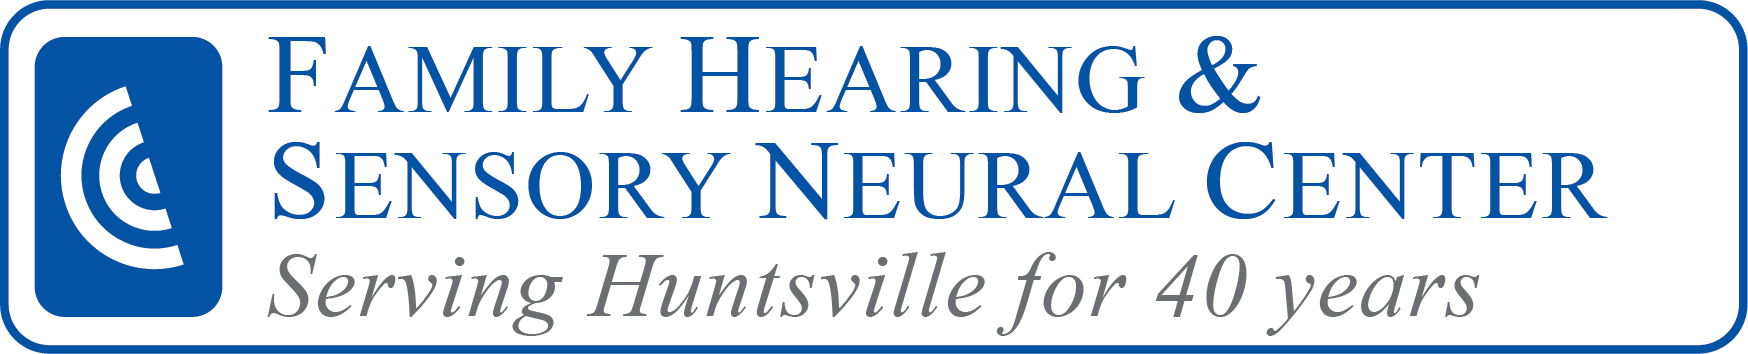 Family Hearing & Sensory Neural Center